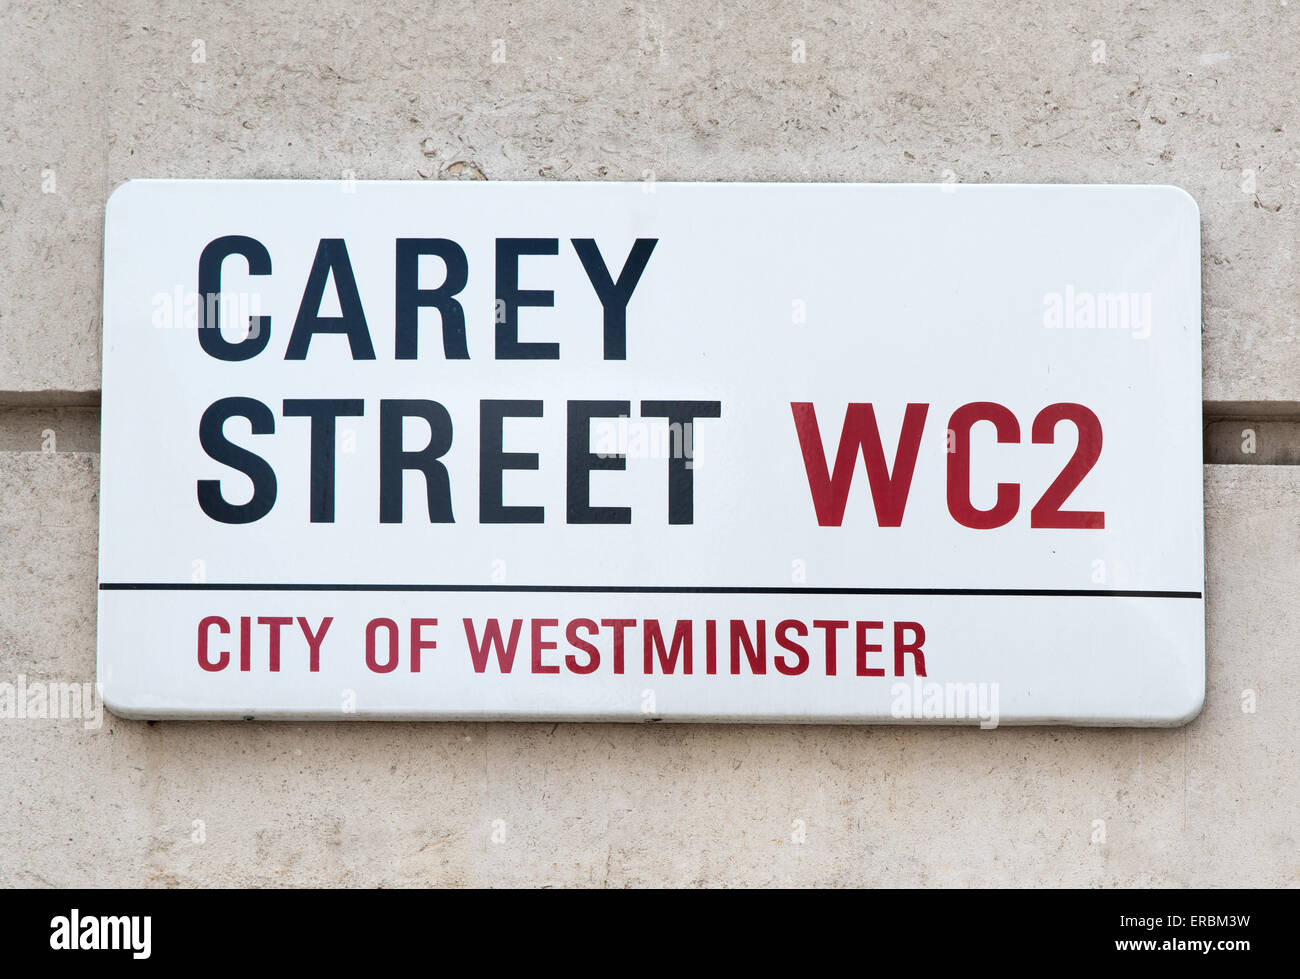 "Zeichen für Carey Street in London WC2. Einst war die Lage des Konkurs-Court.hence den Ausdruck ""in Carey Stockbild"